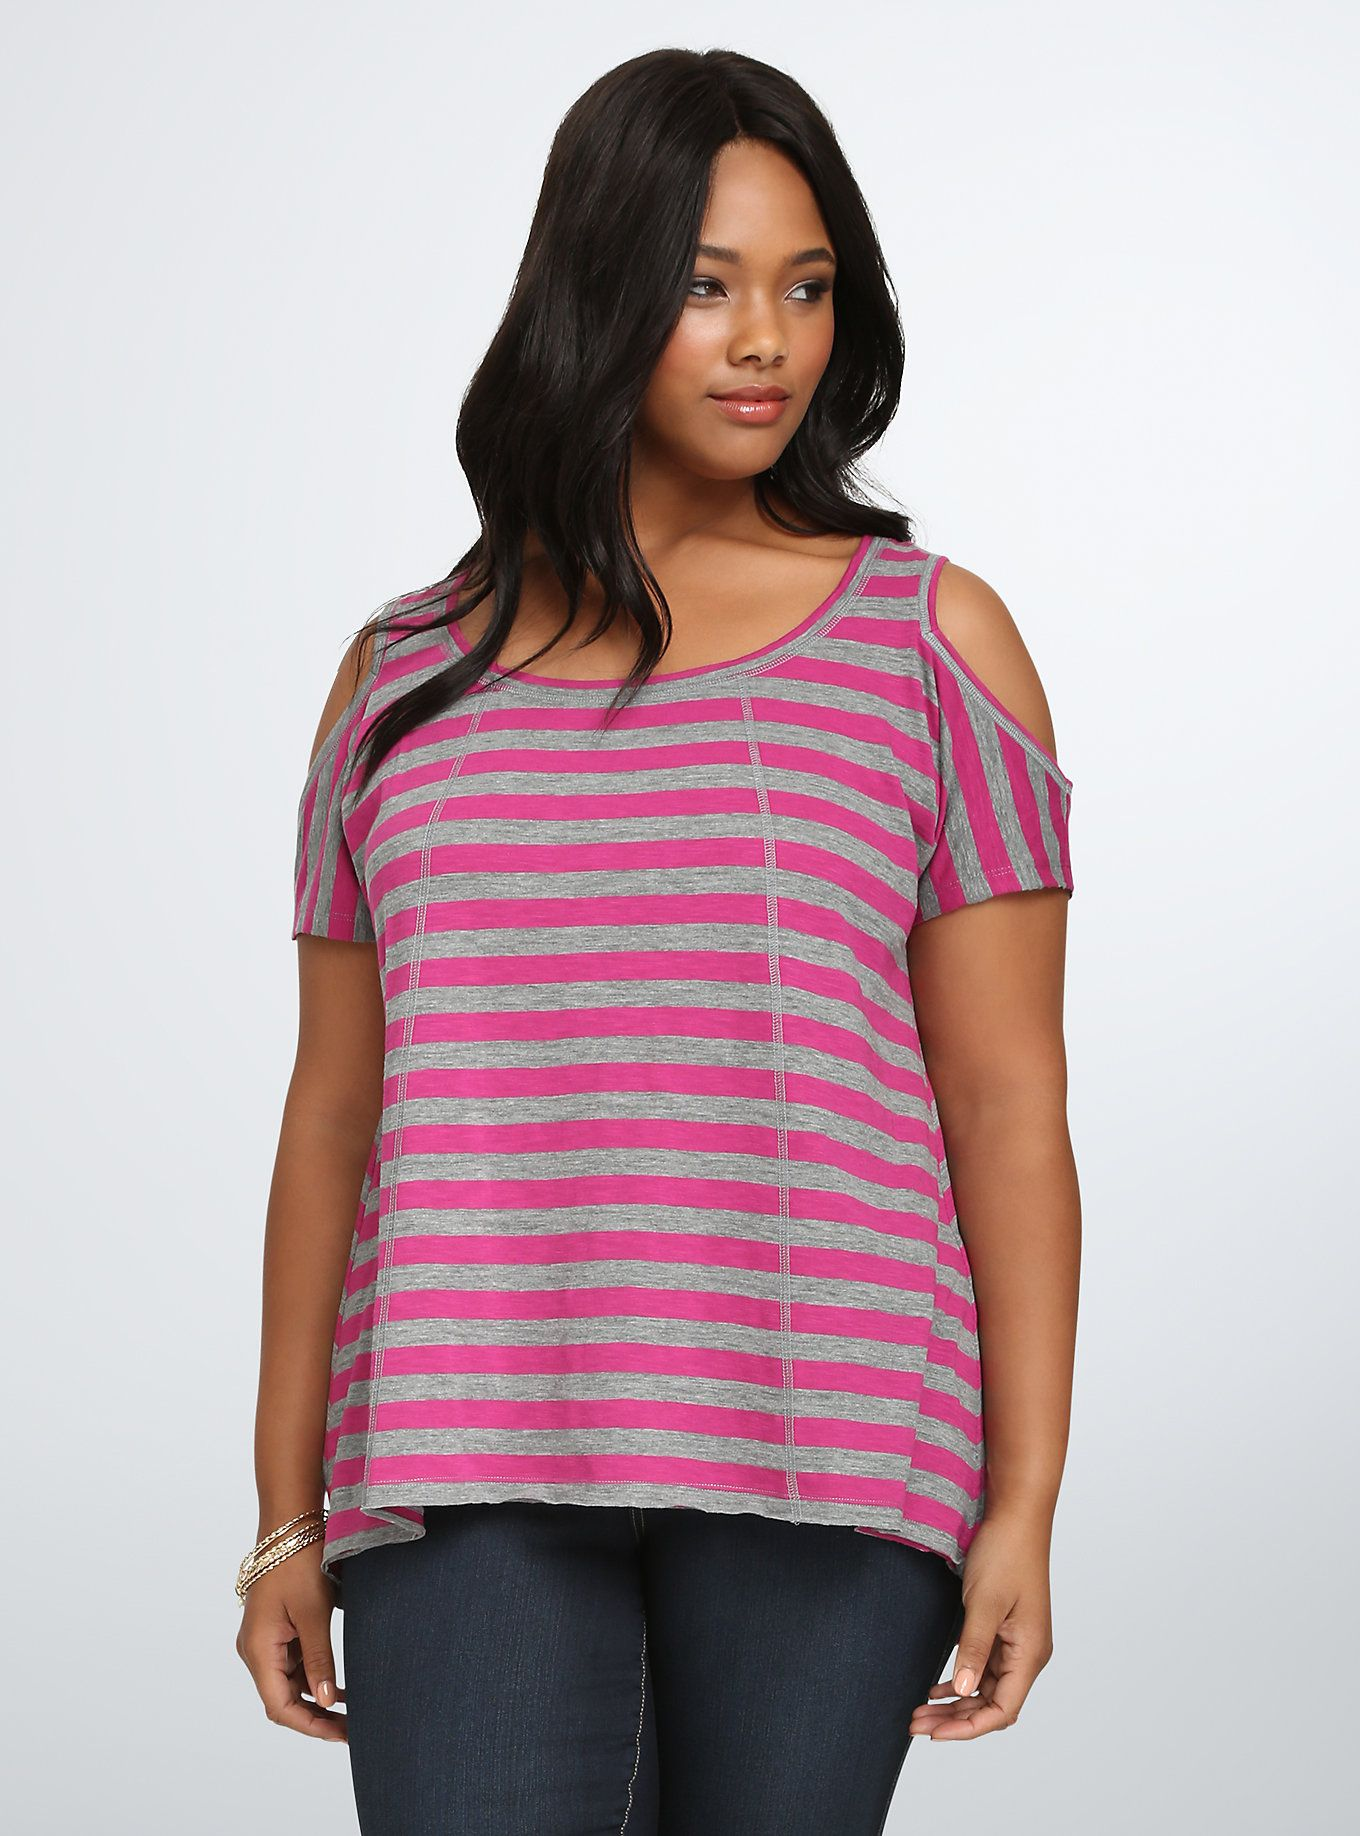 039b8bbf78b369 Striped Cold Shoulder Swing Tee, MULTI STRIPE Plus Size Tees, Sequin Top,  Grey